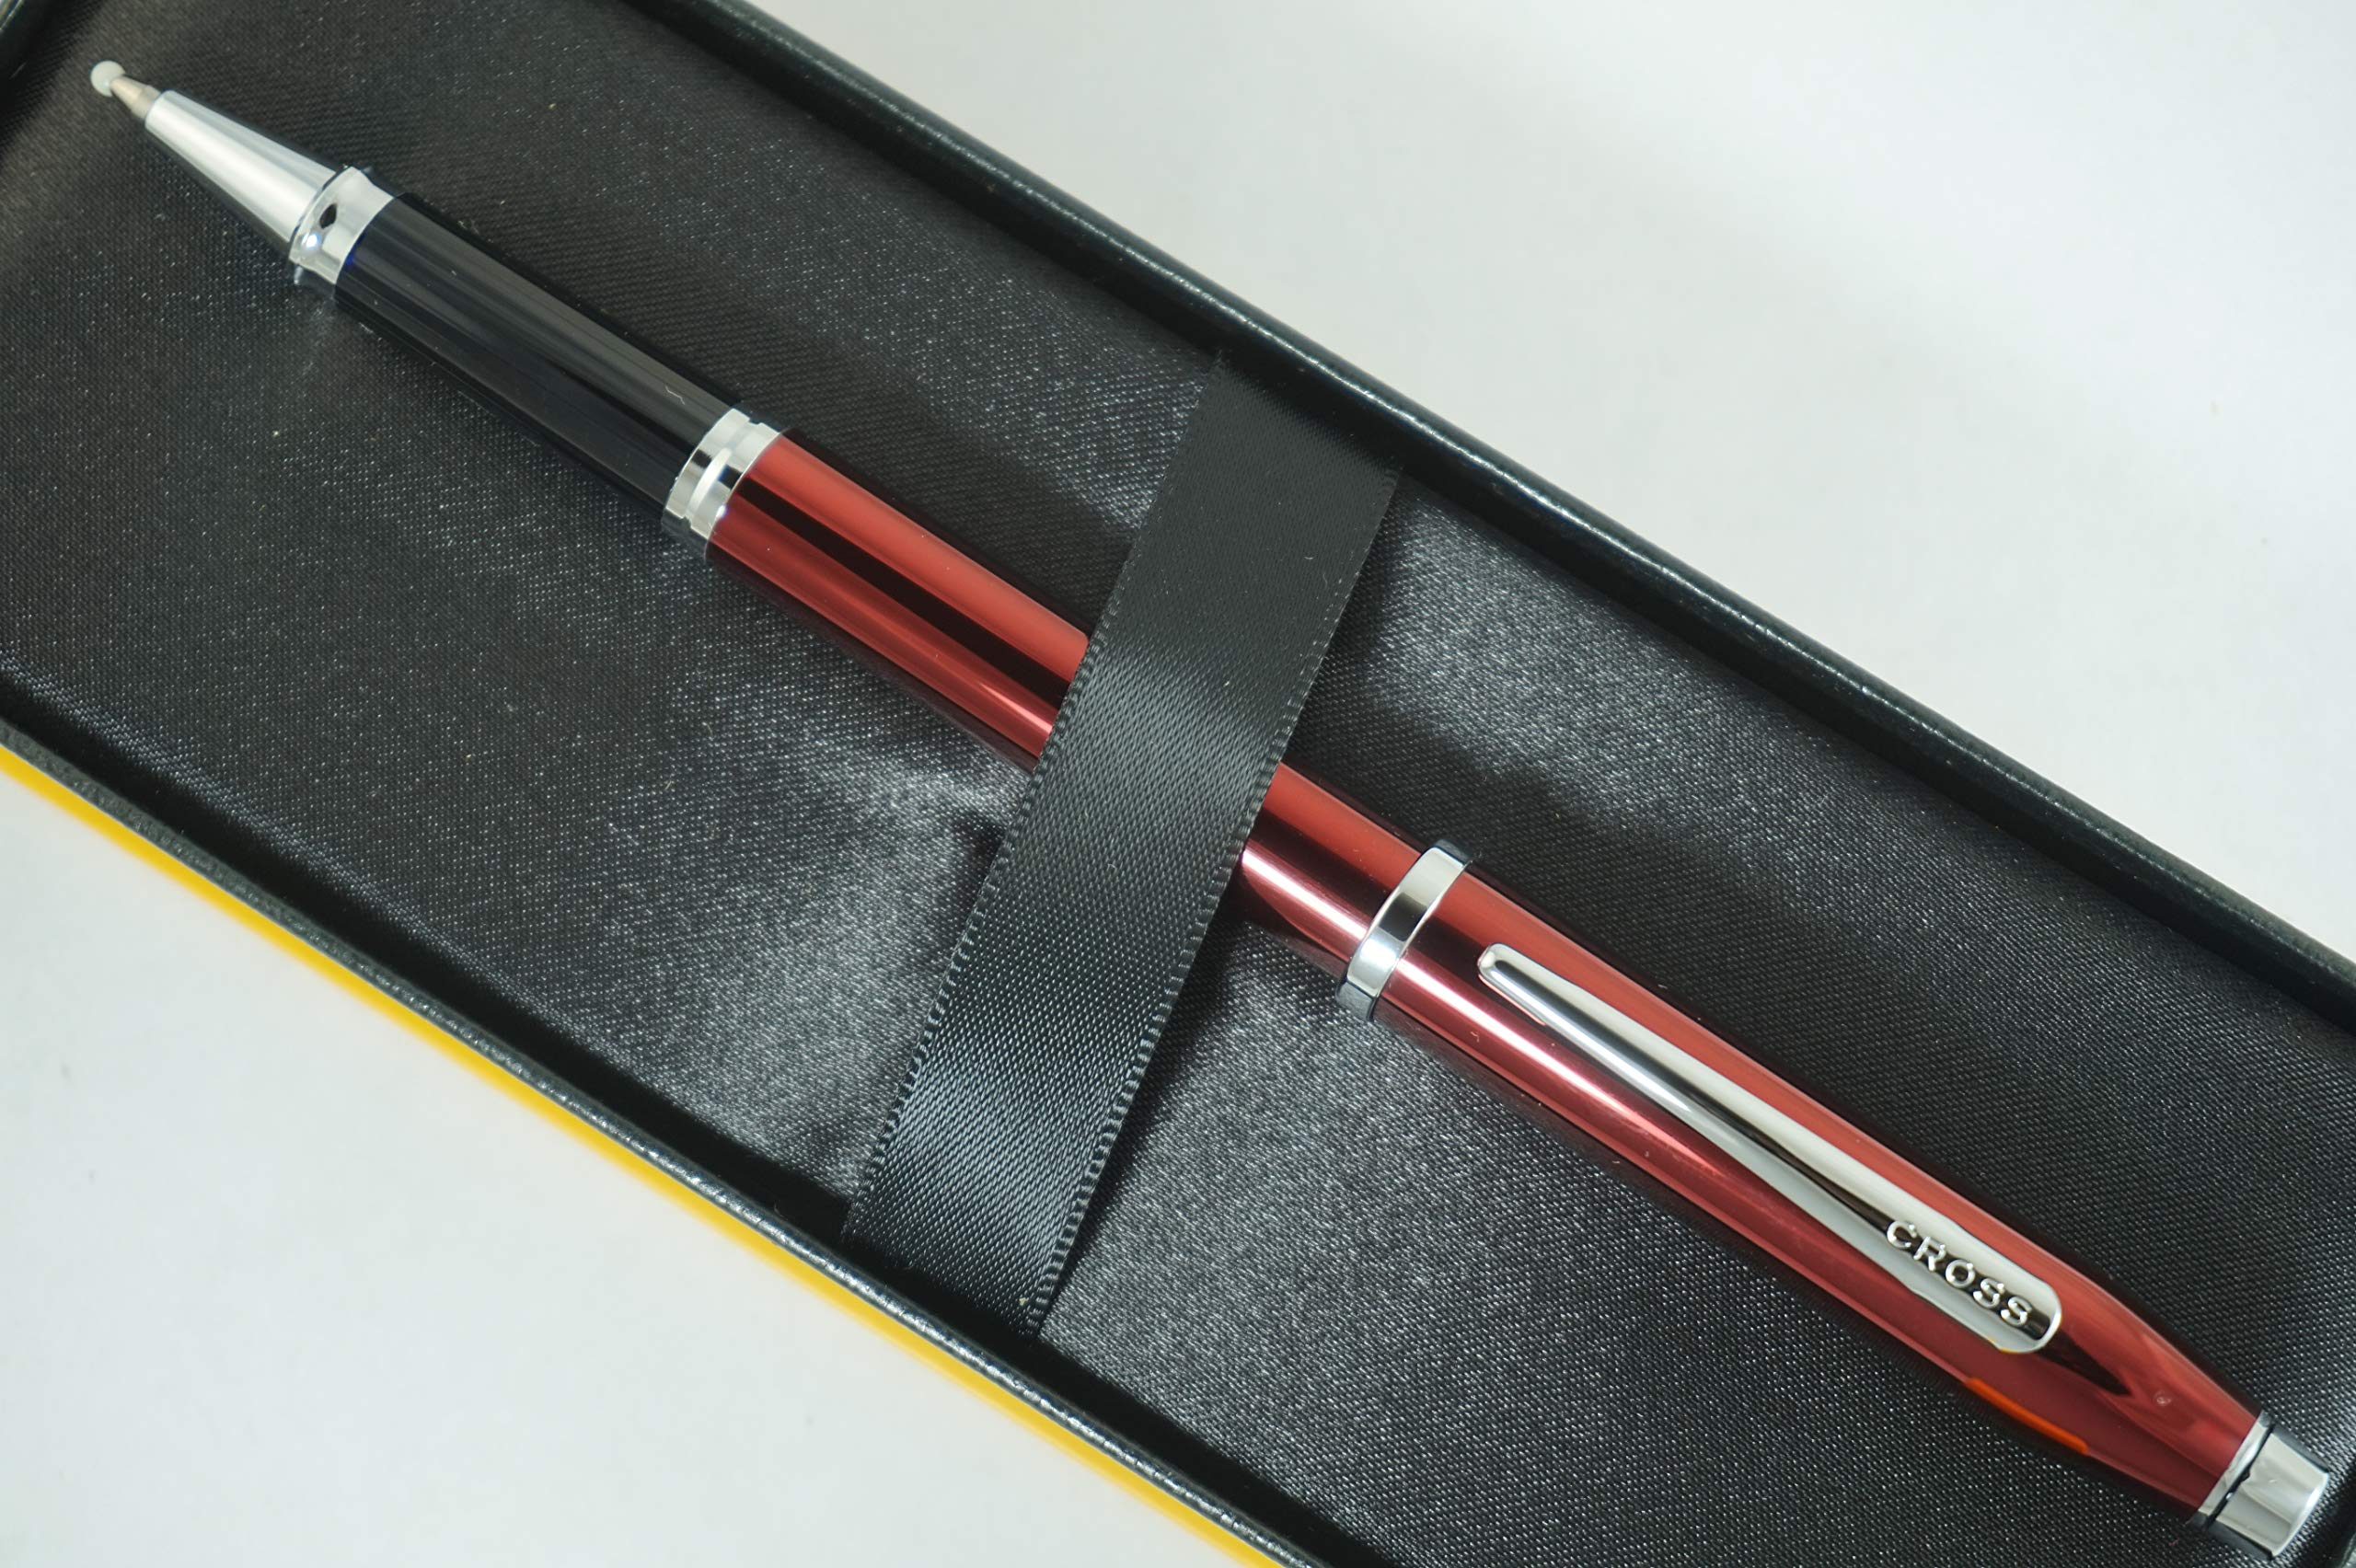 Cross Century II Limited Series, Pearlescent Metallic Ruby Red selectip Gel Ink Rollerball Pen by A.T. Cross (Image #2)